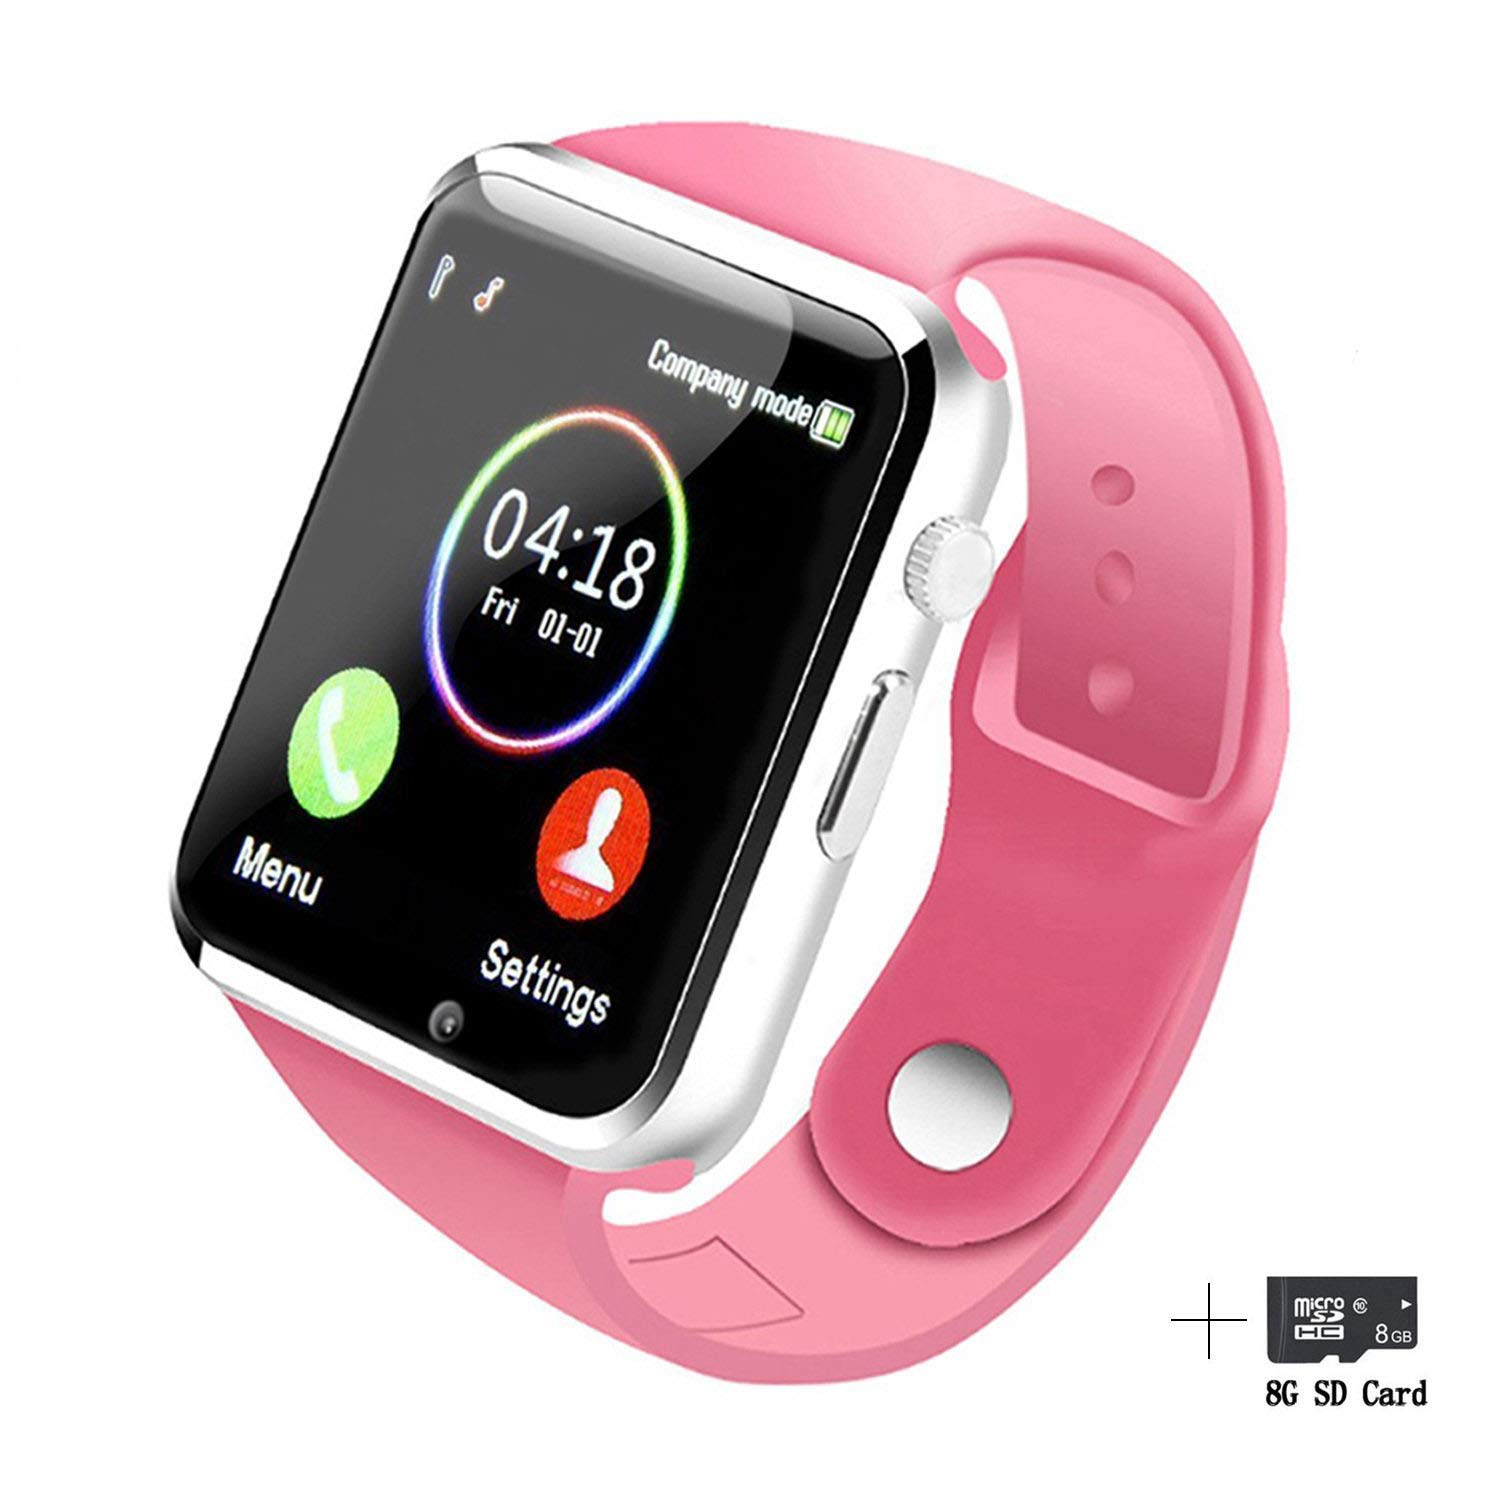 Fitzladd Smart Watches Bluetooth Smart Watch A1 Touch Screen Smart Wrist Watch Phone with SIM Card Slot Camera Pedometer Sport Tracker for iOS iPhone Android Samsung LG for Men Women Child (Pink)